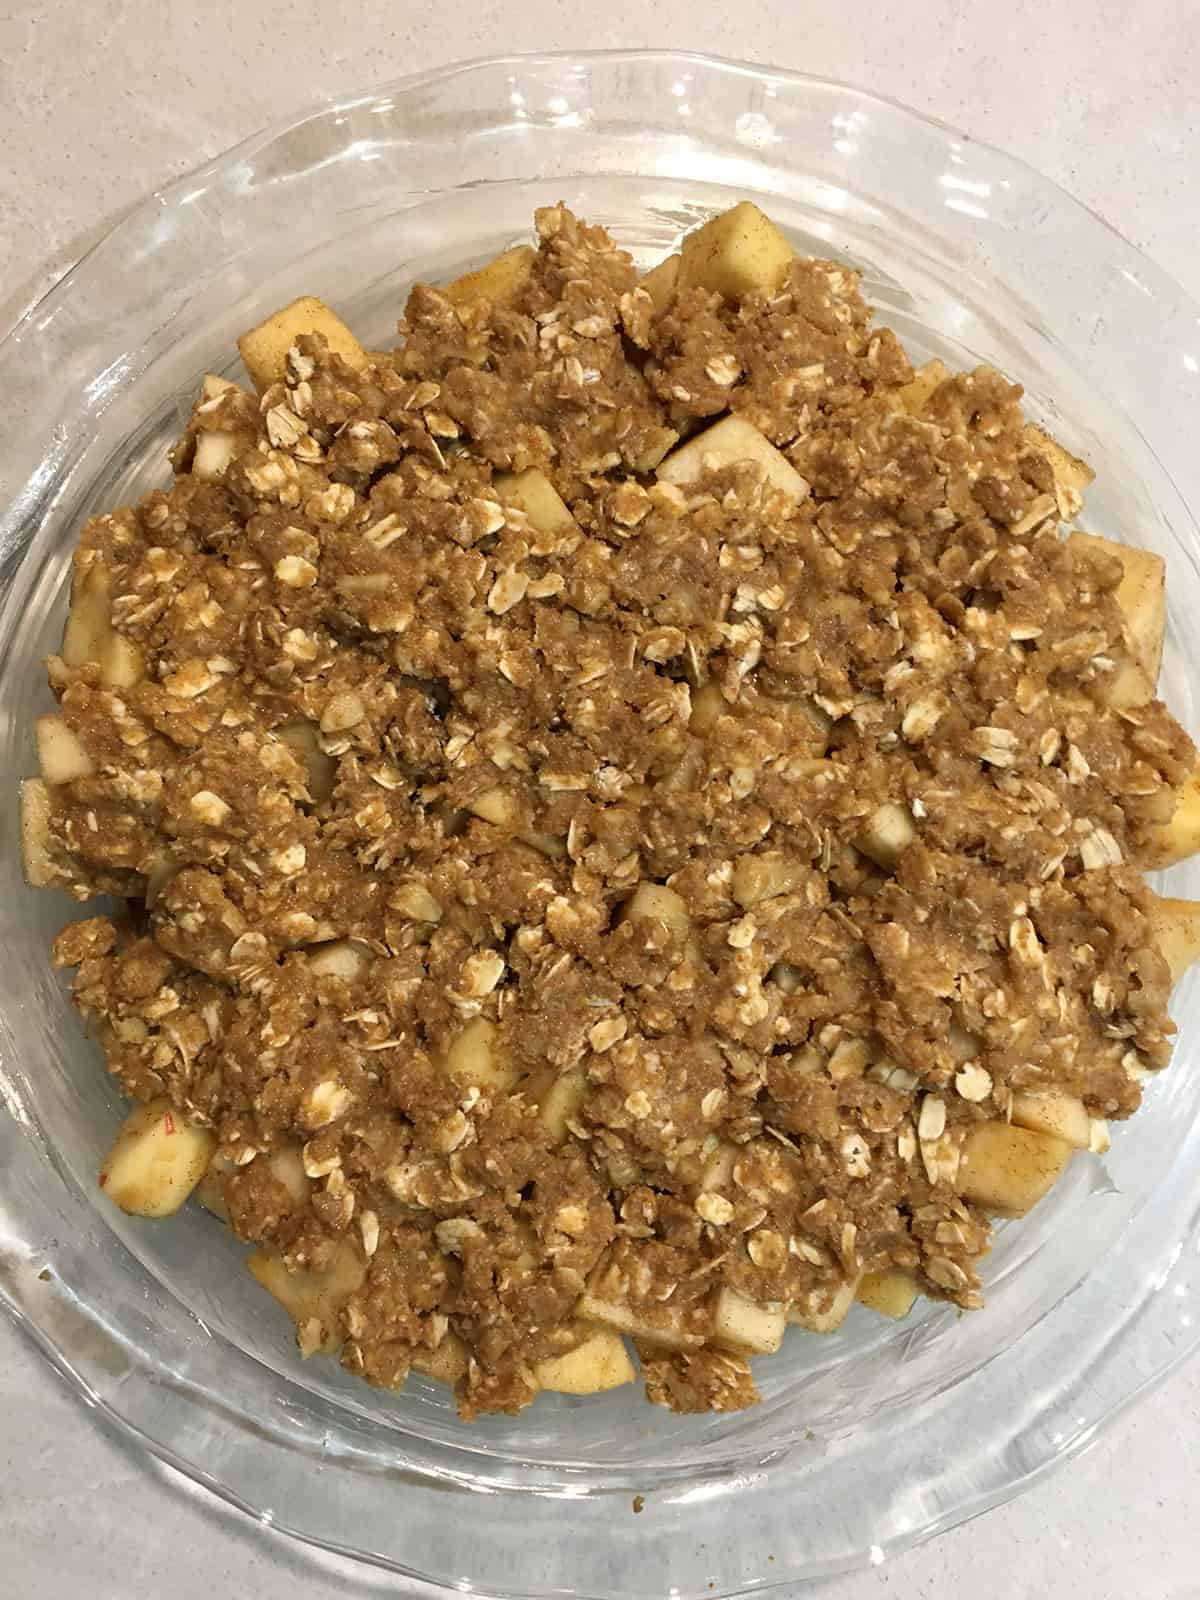 Apple crisp in a glass baking dish ready to go into the oven